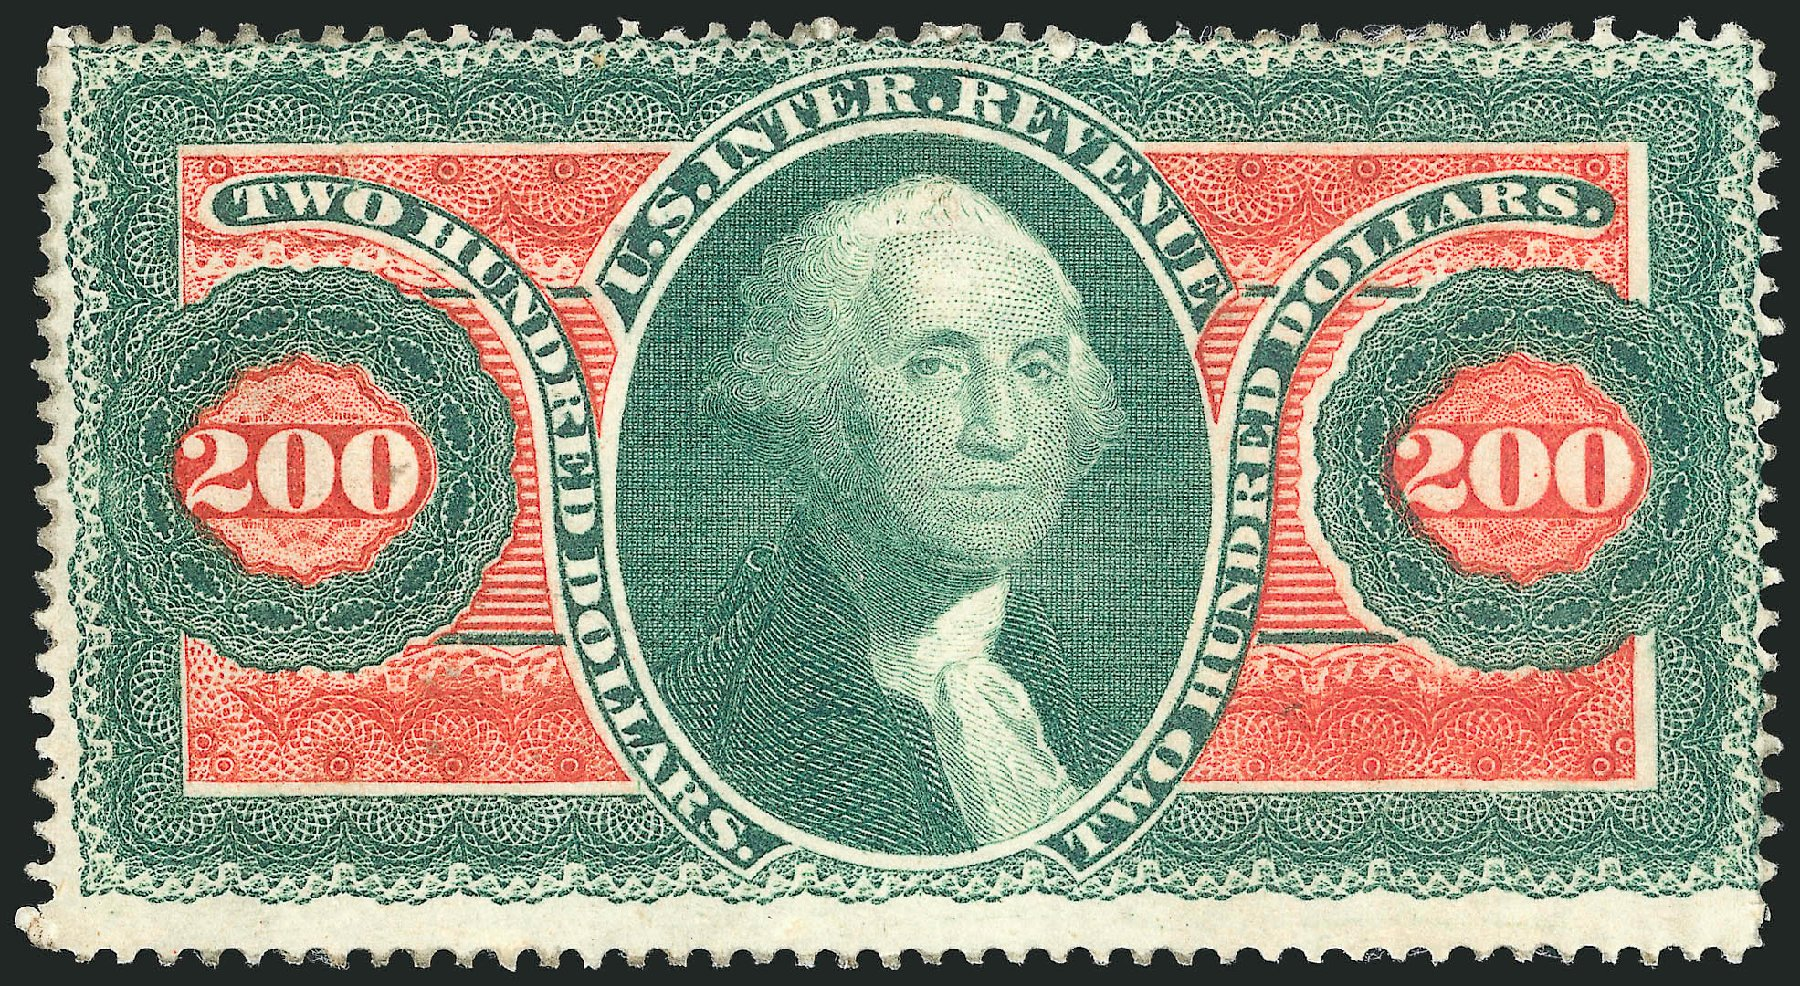 US Stamps Values Scott Catalogue # R102 - US$200.00 1863 Revenue Internal. Robert Siegel Auction Galleries, Dec 2014, Sale 1089, Lot 315